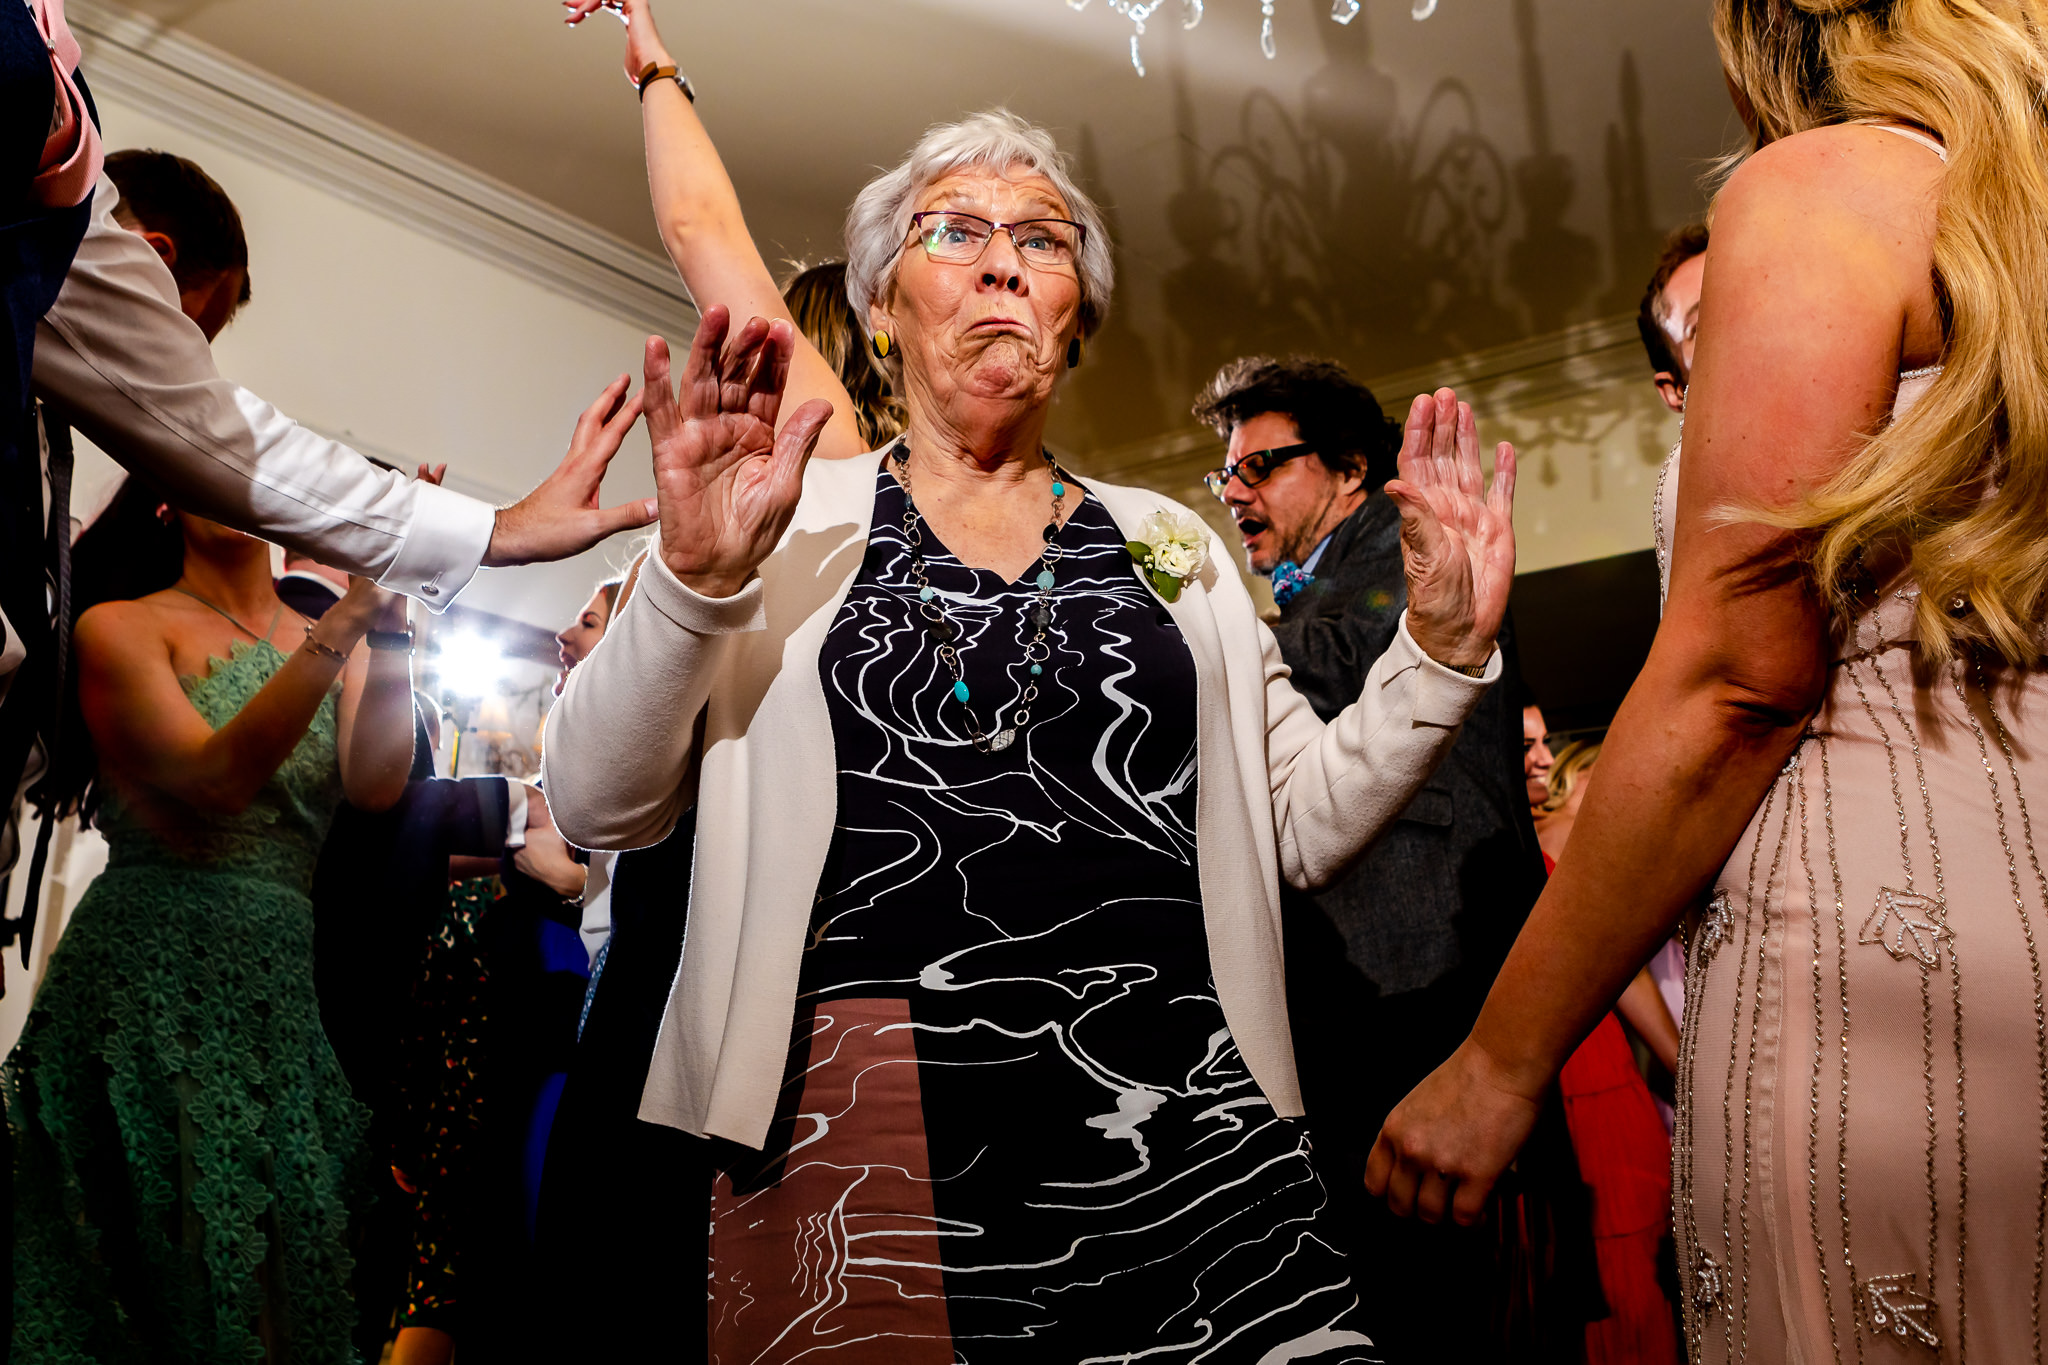 Dancing Granny at a wedding